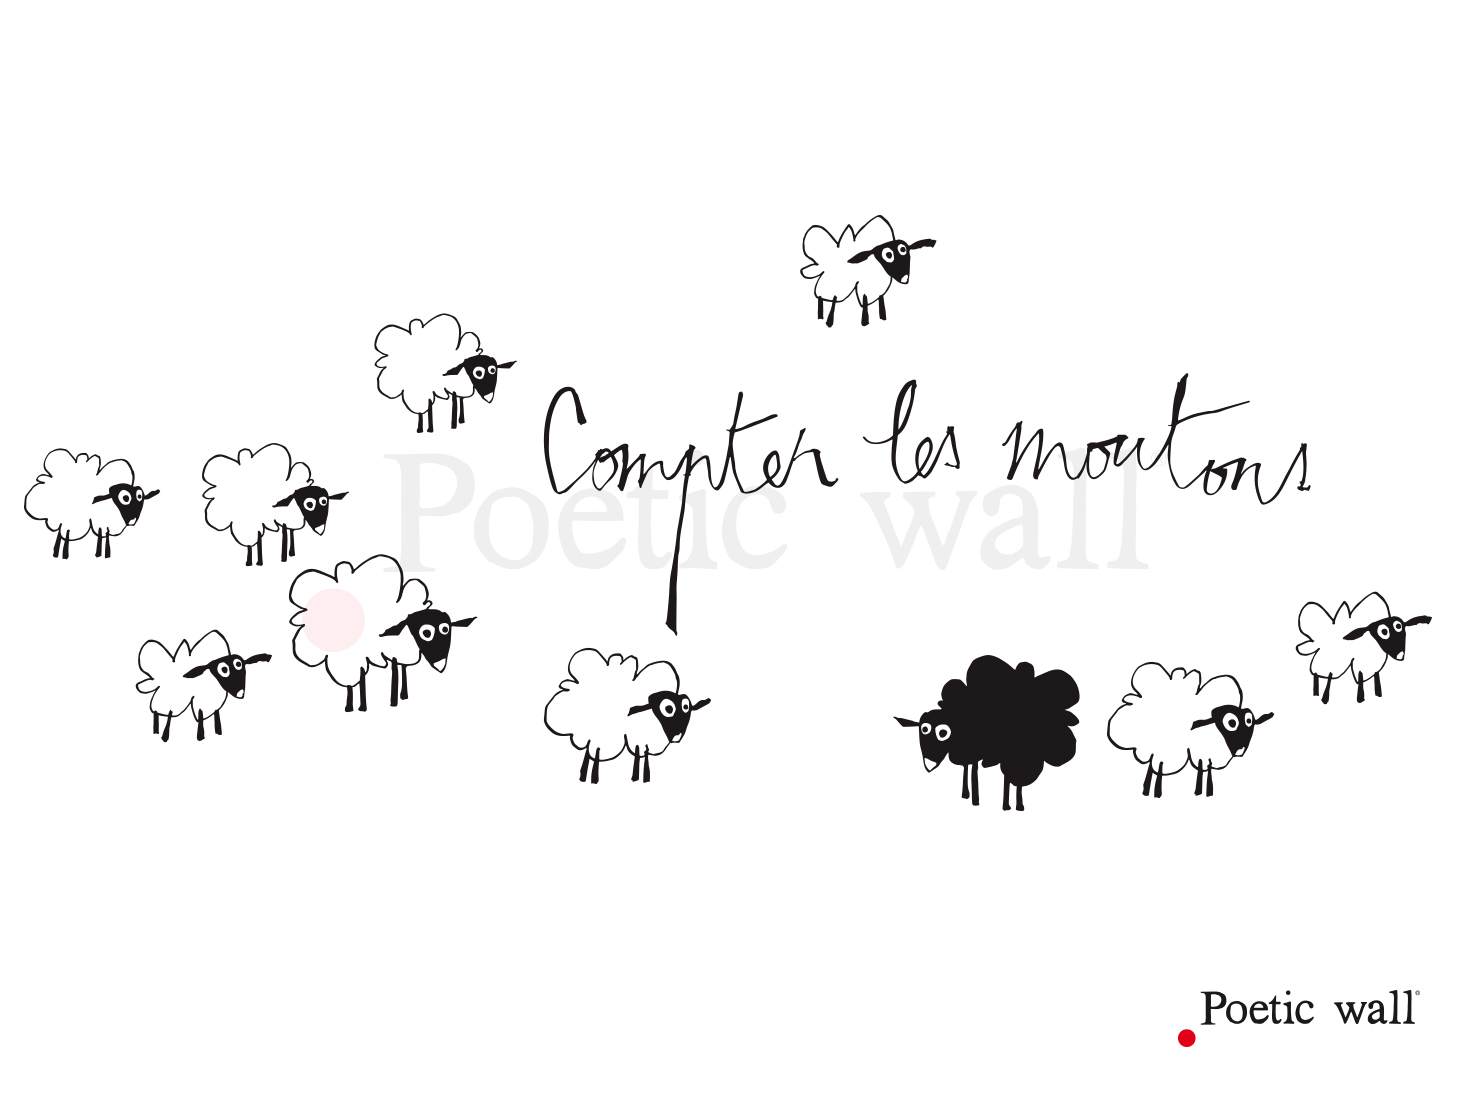 stickers-poeticwall-compter-les-moutons2